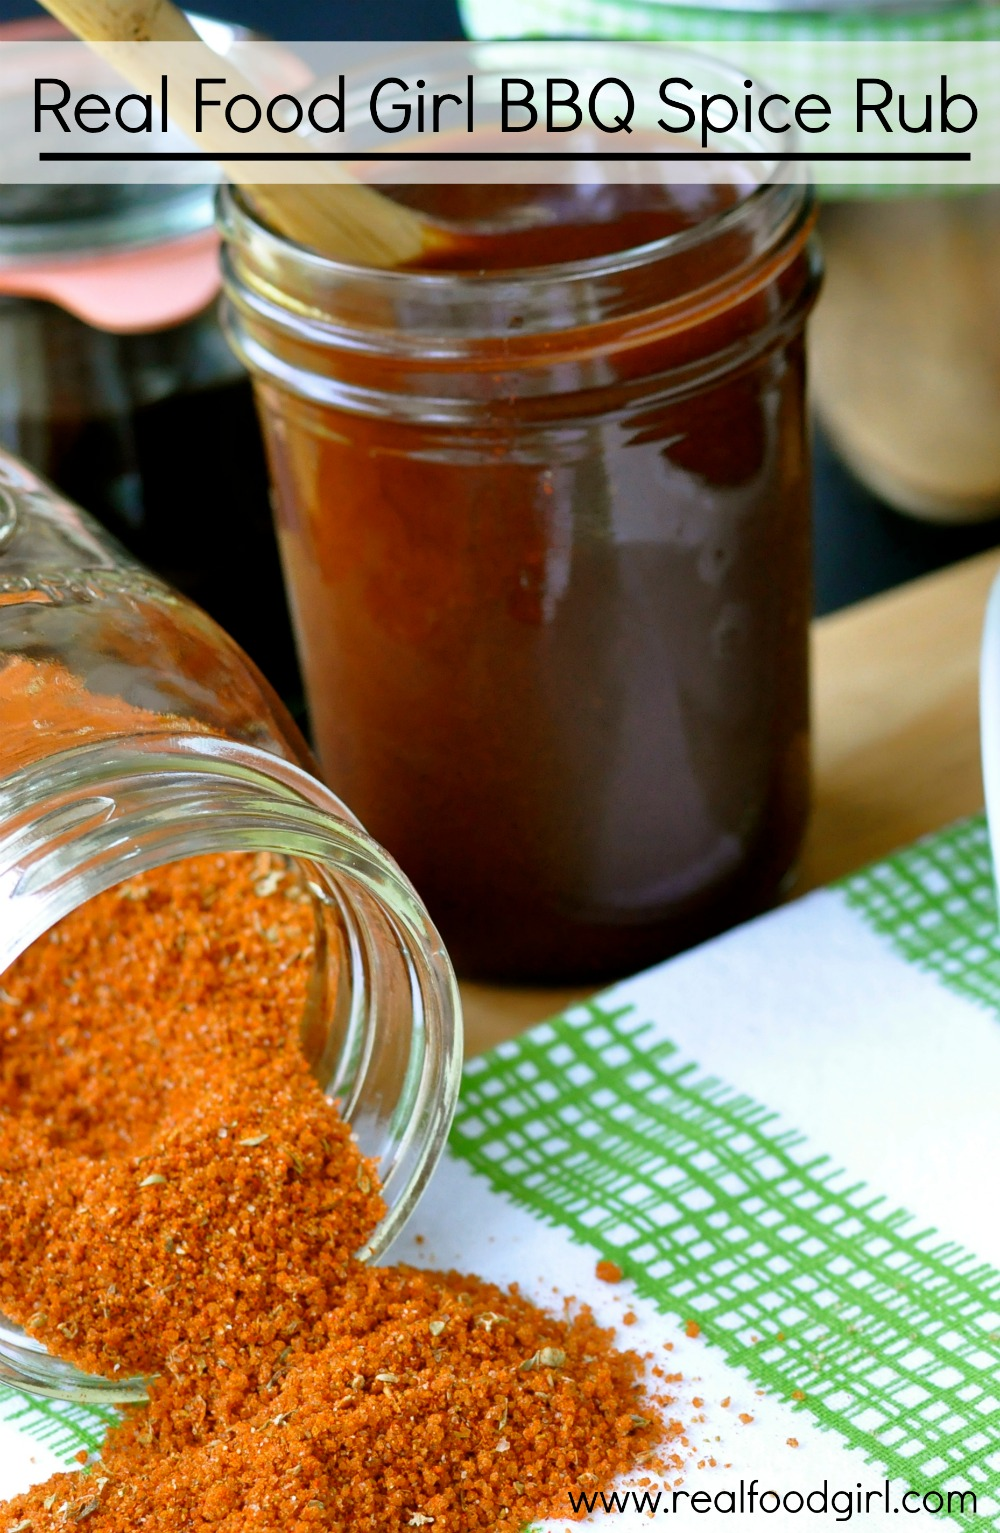 Real Food Girl BBQ Spice Rub- for ribs and more! www.realfoodgirl.com